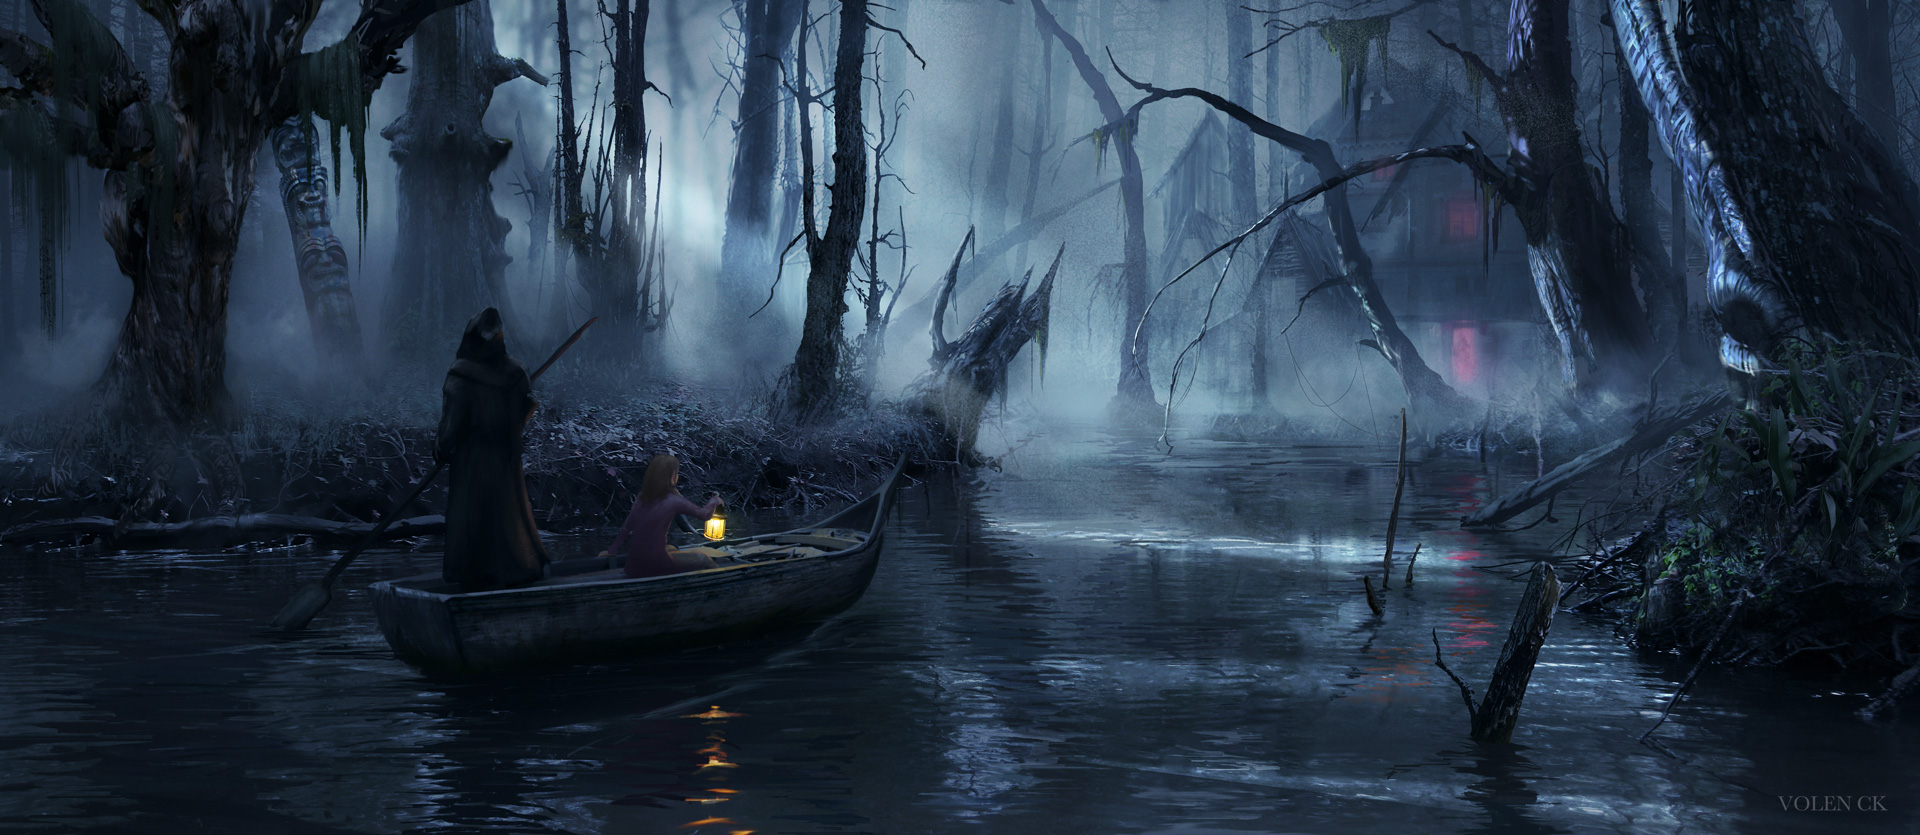 The-House-at-The-Swamp---Volen-CK---Concept-Art---Illustration---Design